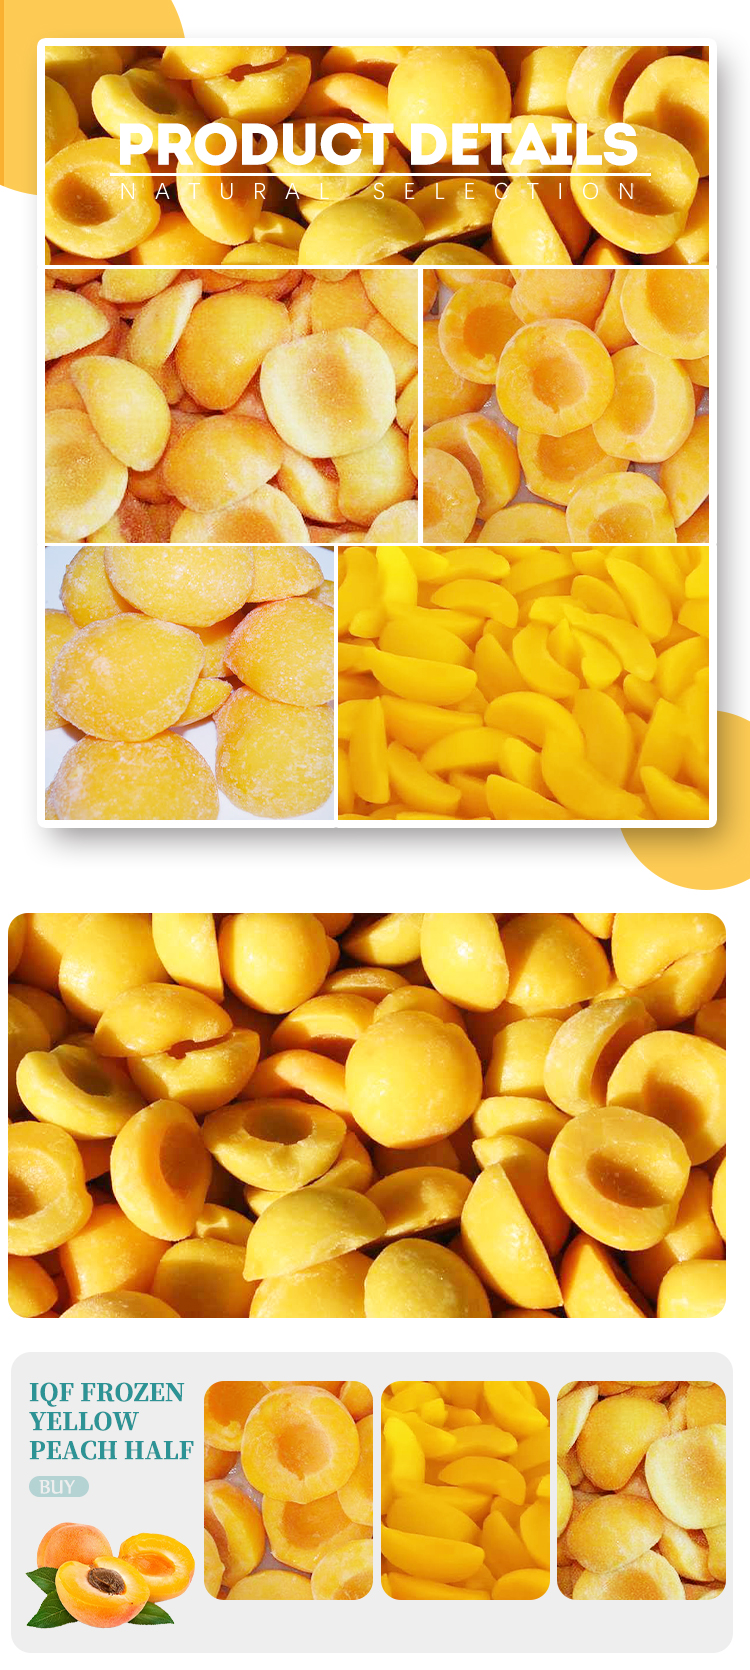 IQF yellow peach halves nutrition high quality